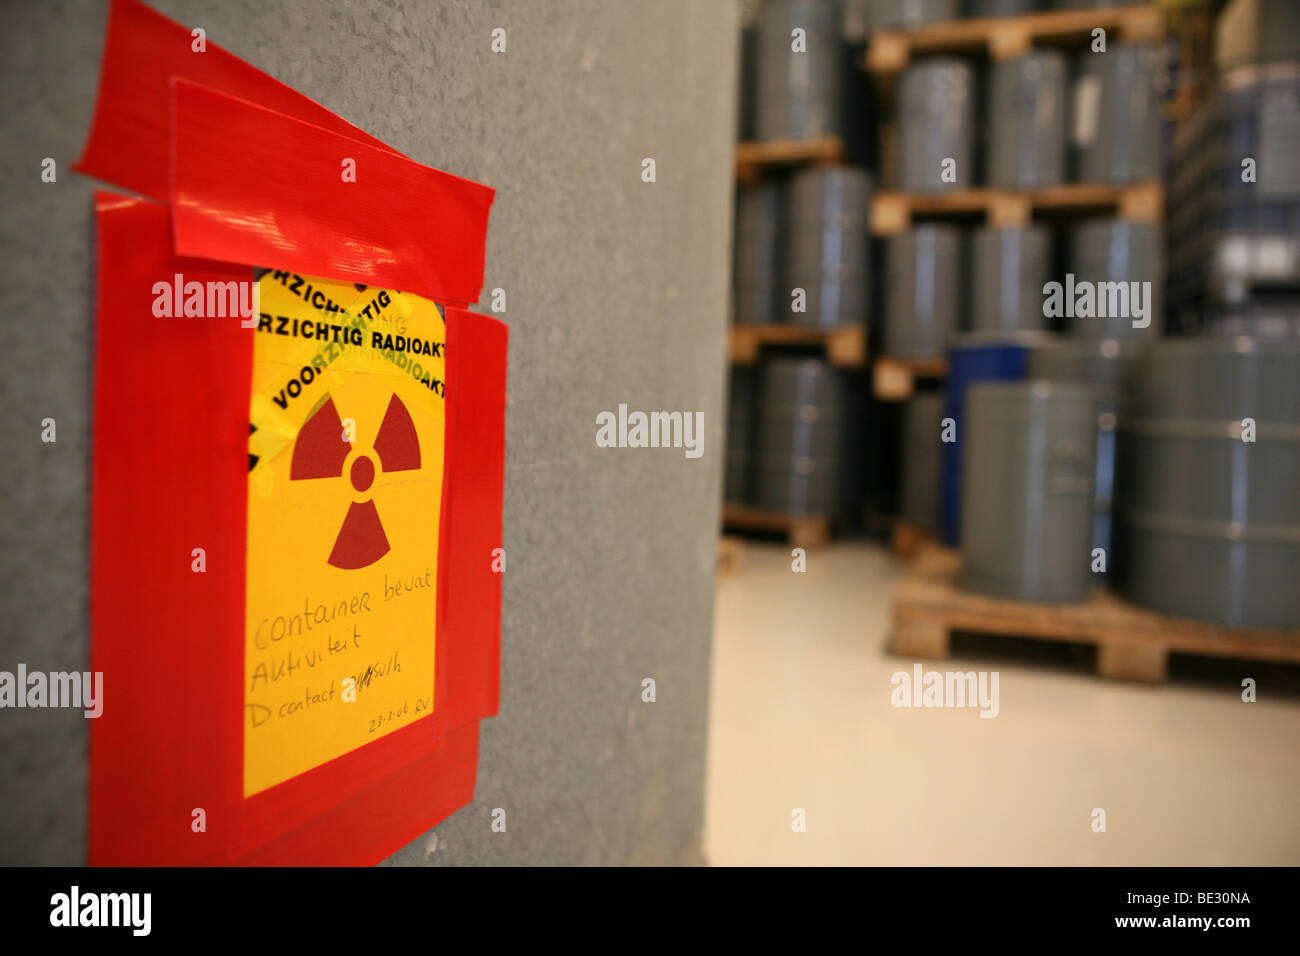 Radioactive waste in the Netherlands is stored in Nieuwdorp - Stock Image